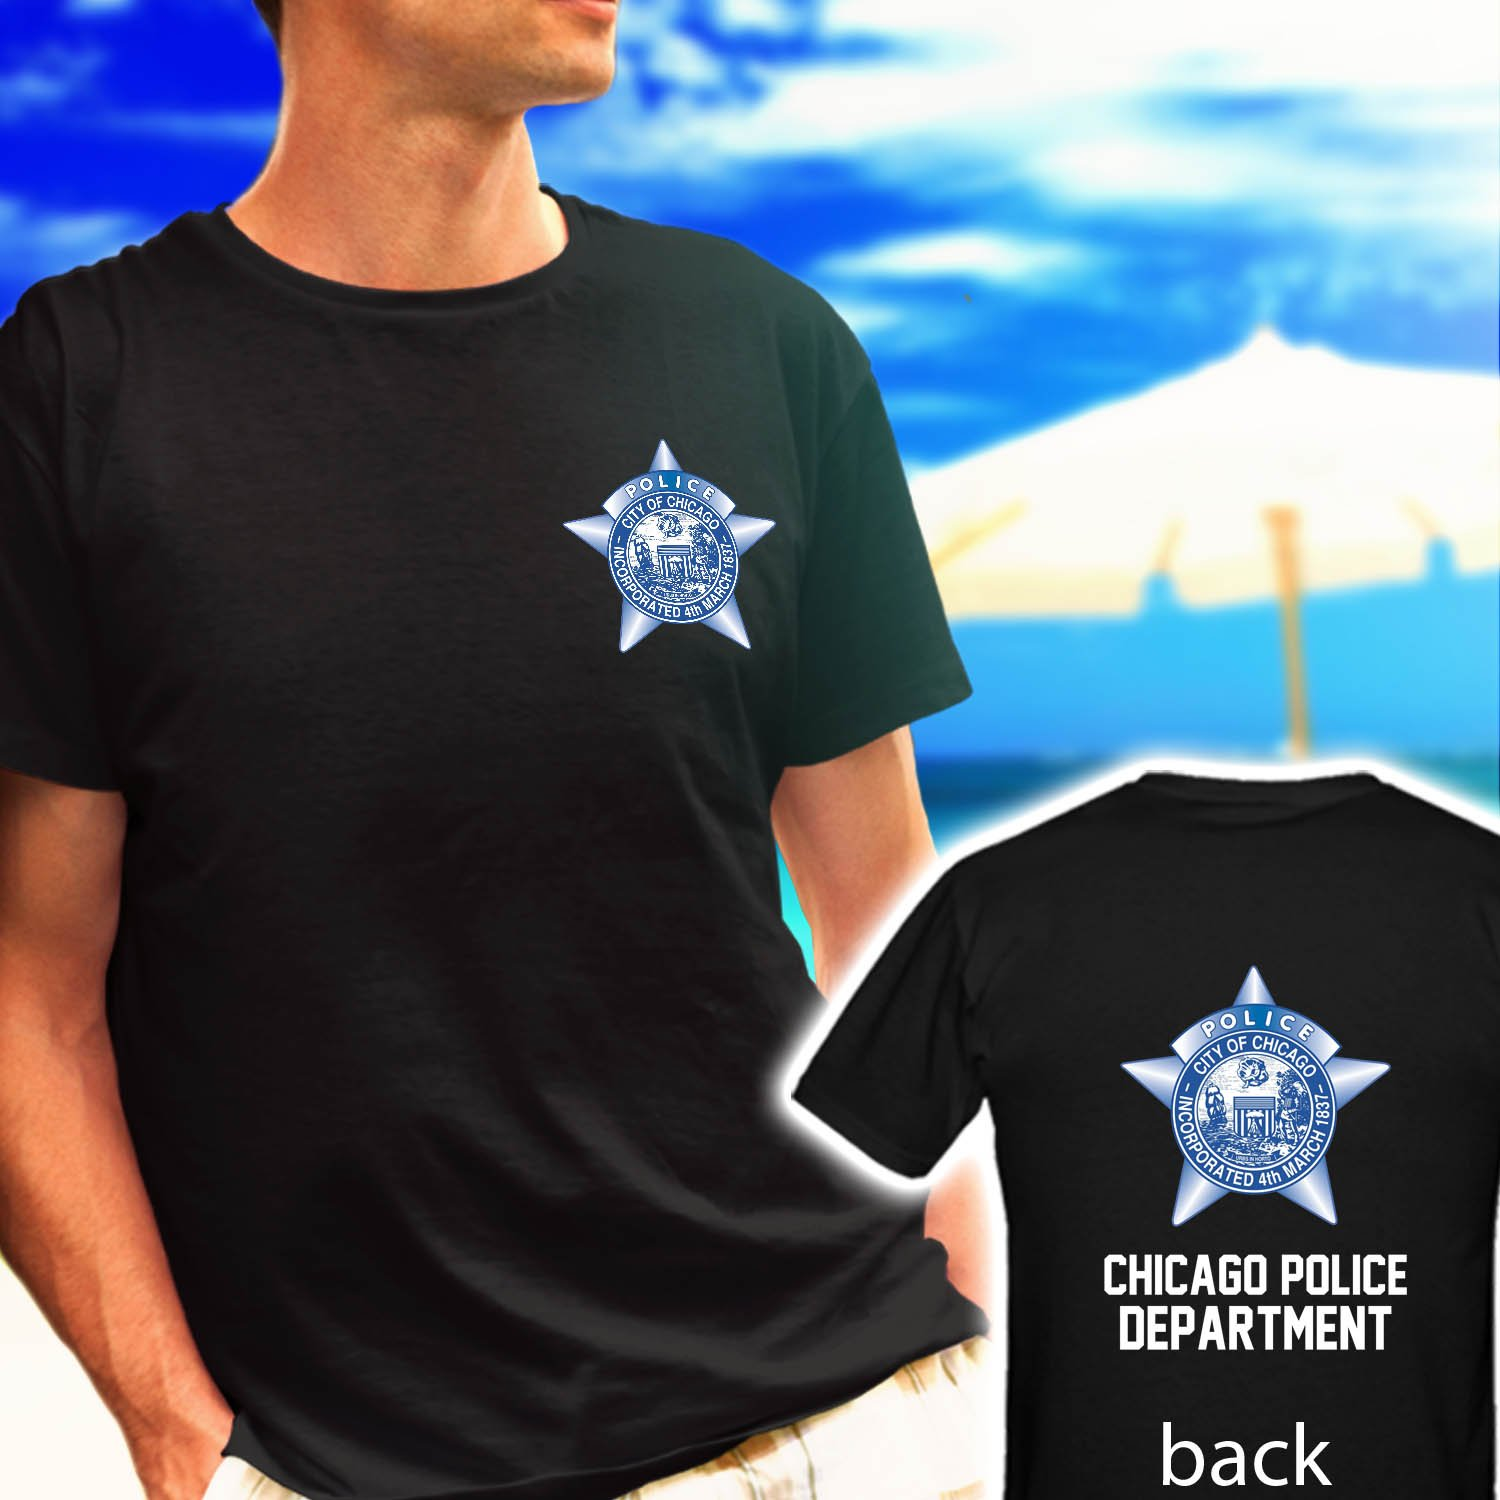 CHICAGO POLICE DEPARTMENT LOGO BADGE black t-shirt tshirt shirts tee SIZE M